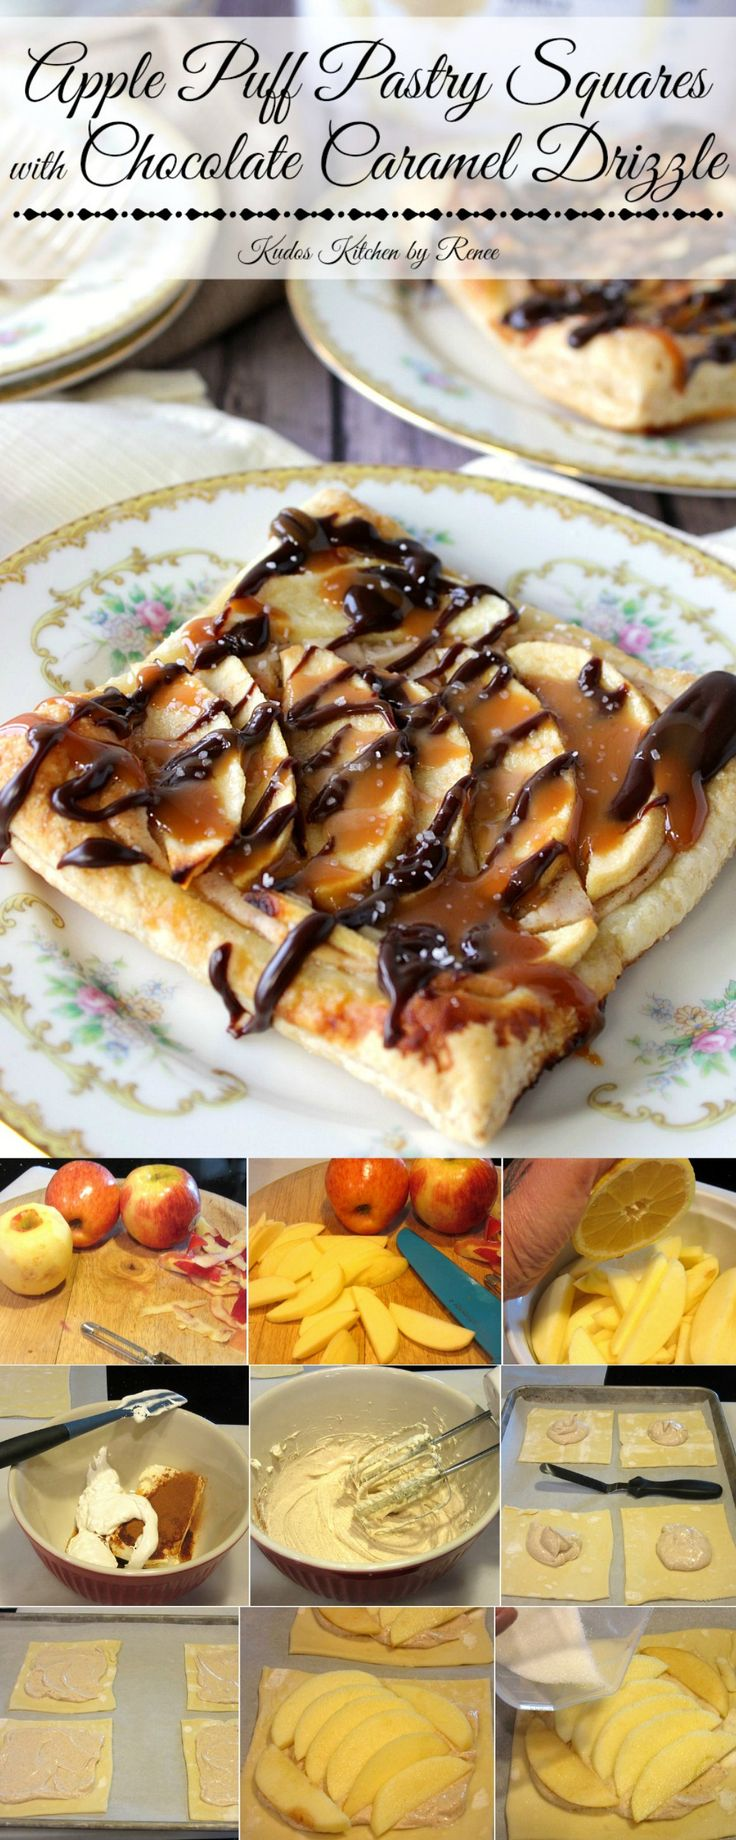 When it's time for dessert, and you want to impress but not spend hours in the kitchen preparing, then these Rustic Apple Puff Pastry Squares with a Chocolate Caramel Drizzle are just what the dessert doctor ordered. - Kudos Kitchen by Renee - www.kudoskitchenbyrenee.com